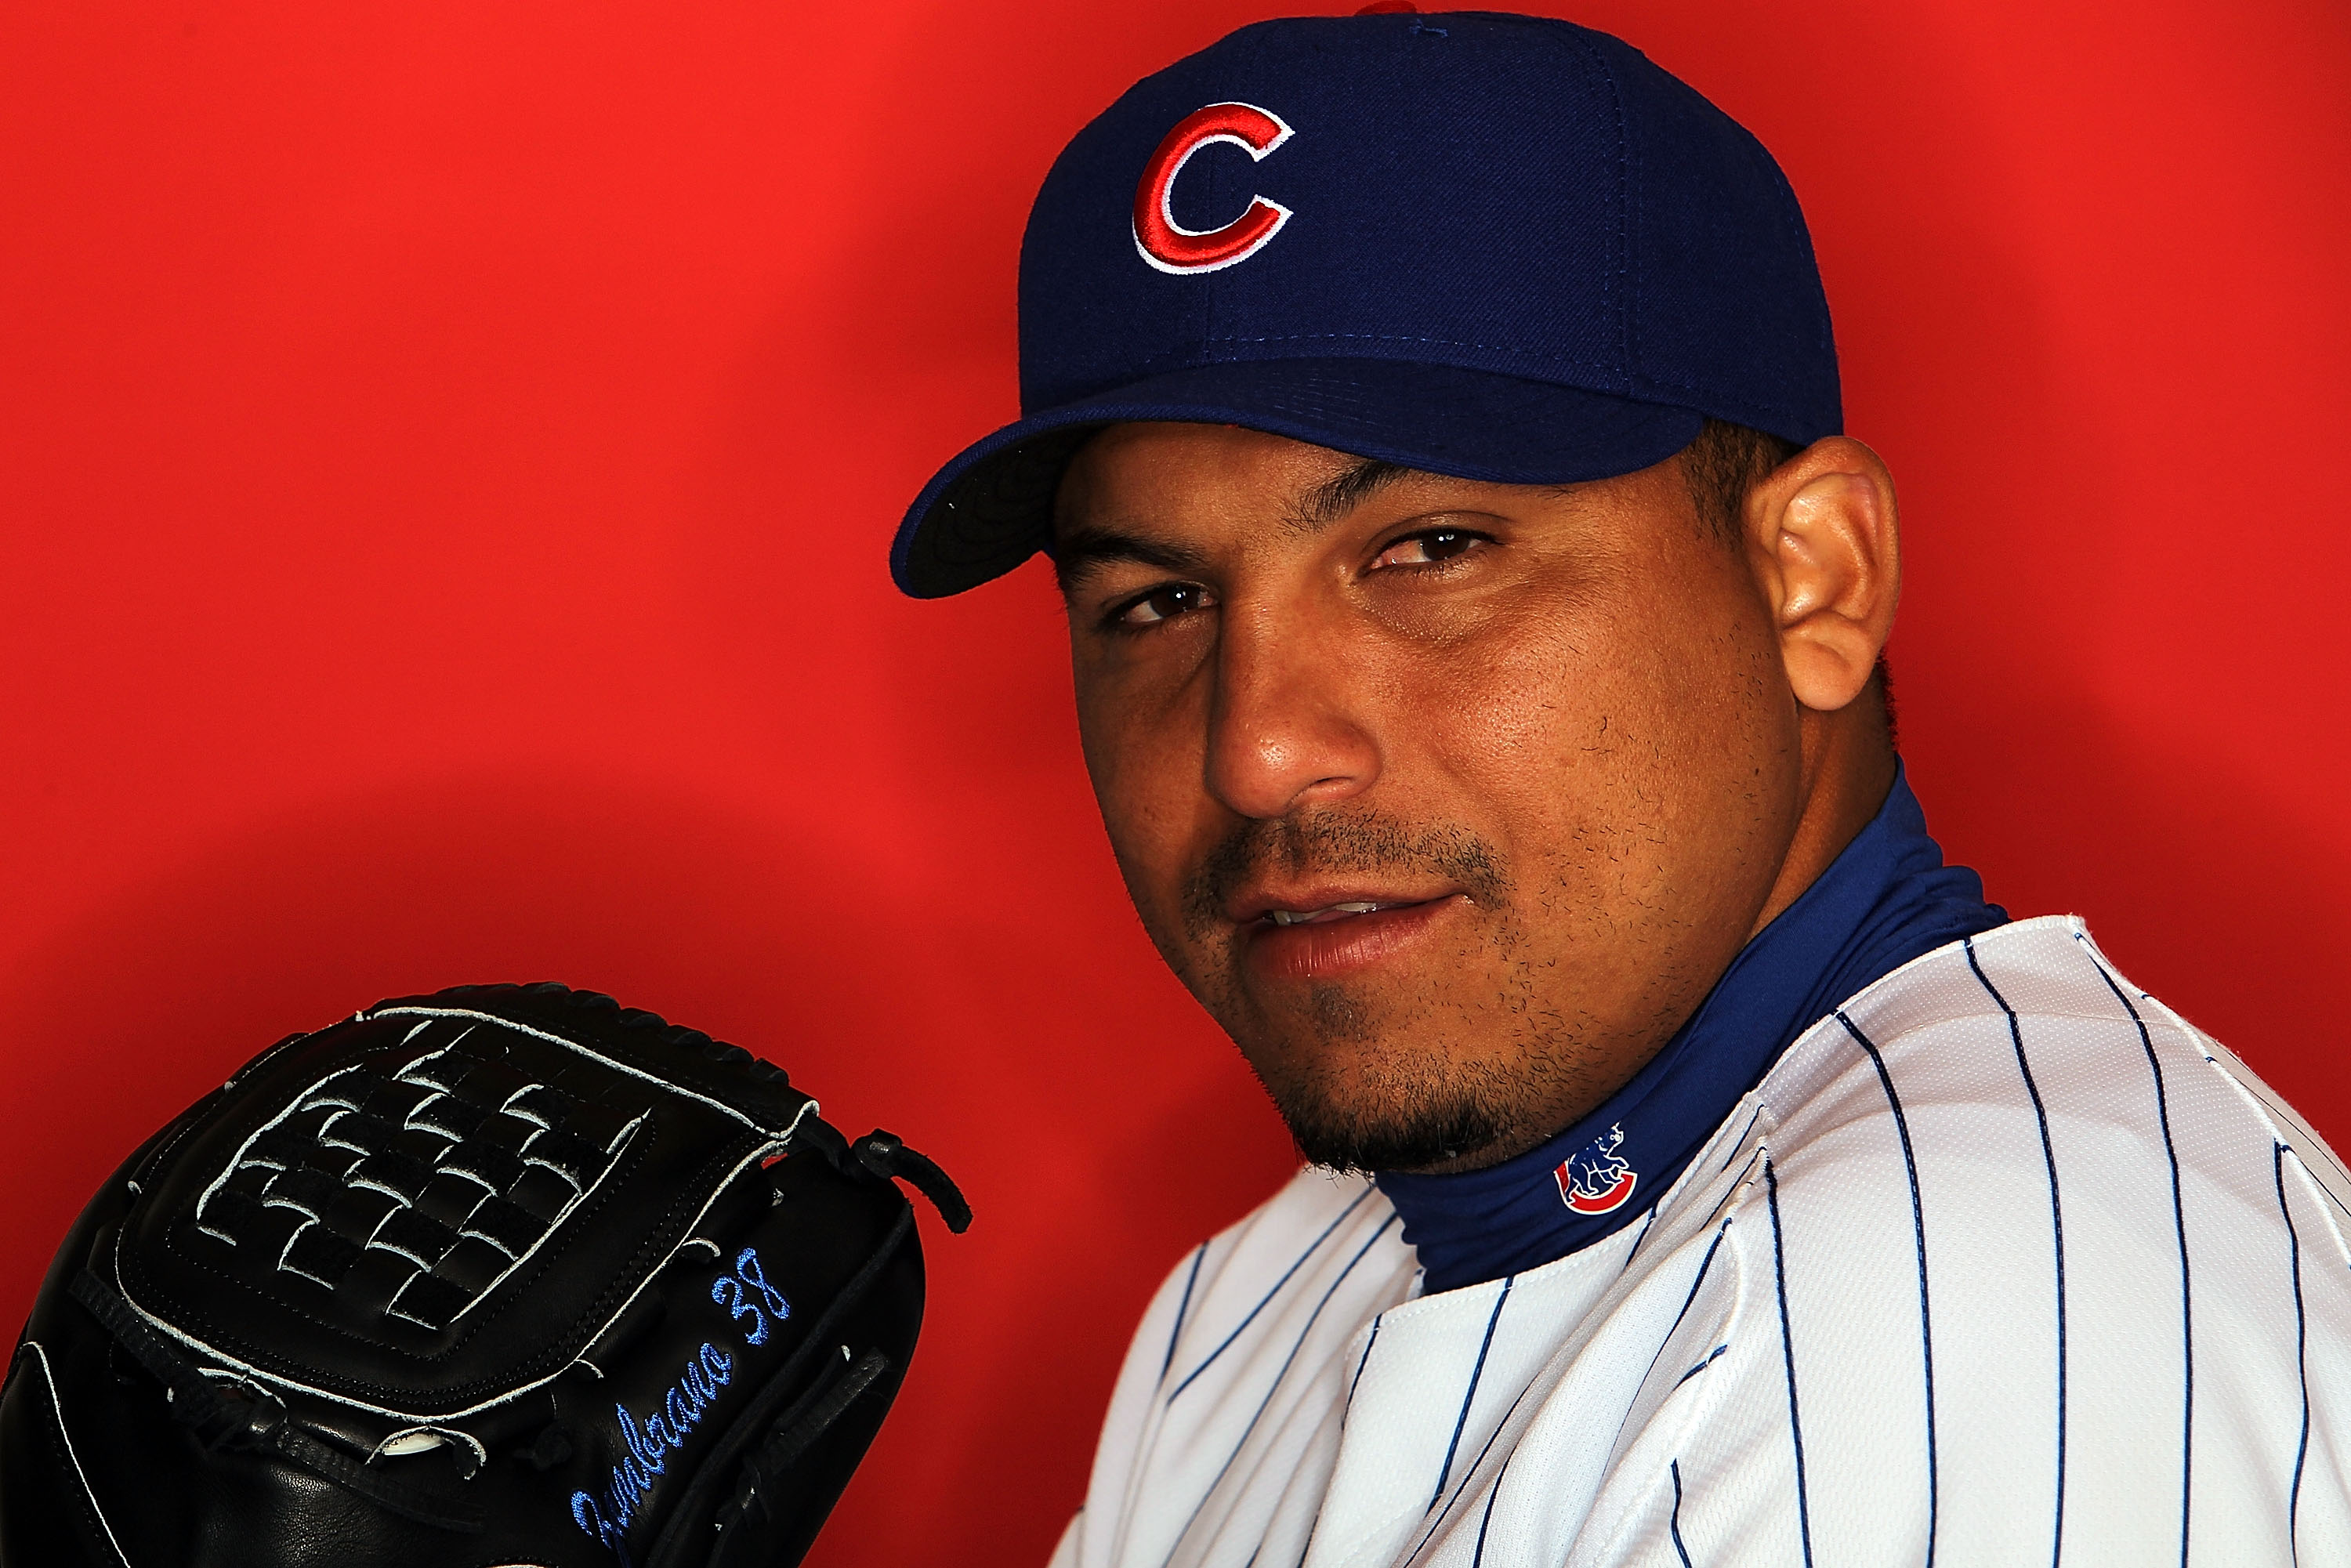 MESA, AZ - MARCH 01:  Carlos Zambrano of the Chicago Cubs poses for a photo during Spring Training Media Photo Day at Fitch Park on March 1, 2010 in Mesa, Arizona.  (Photo by Ronald Martinez/Getty Images)